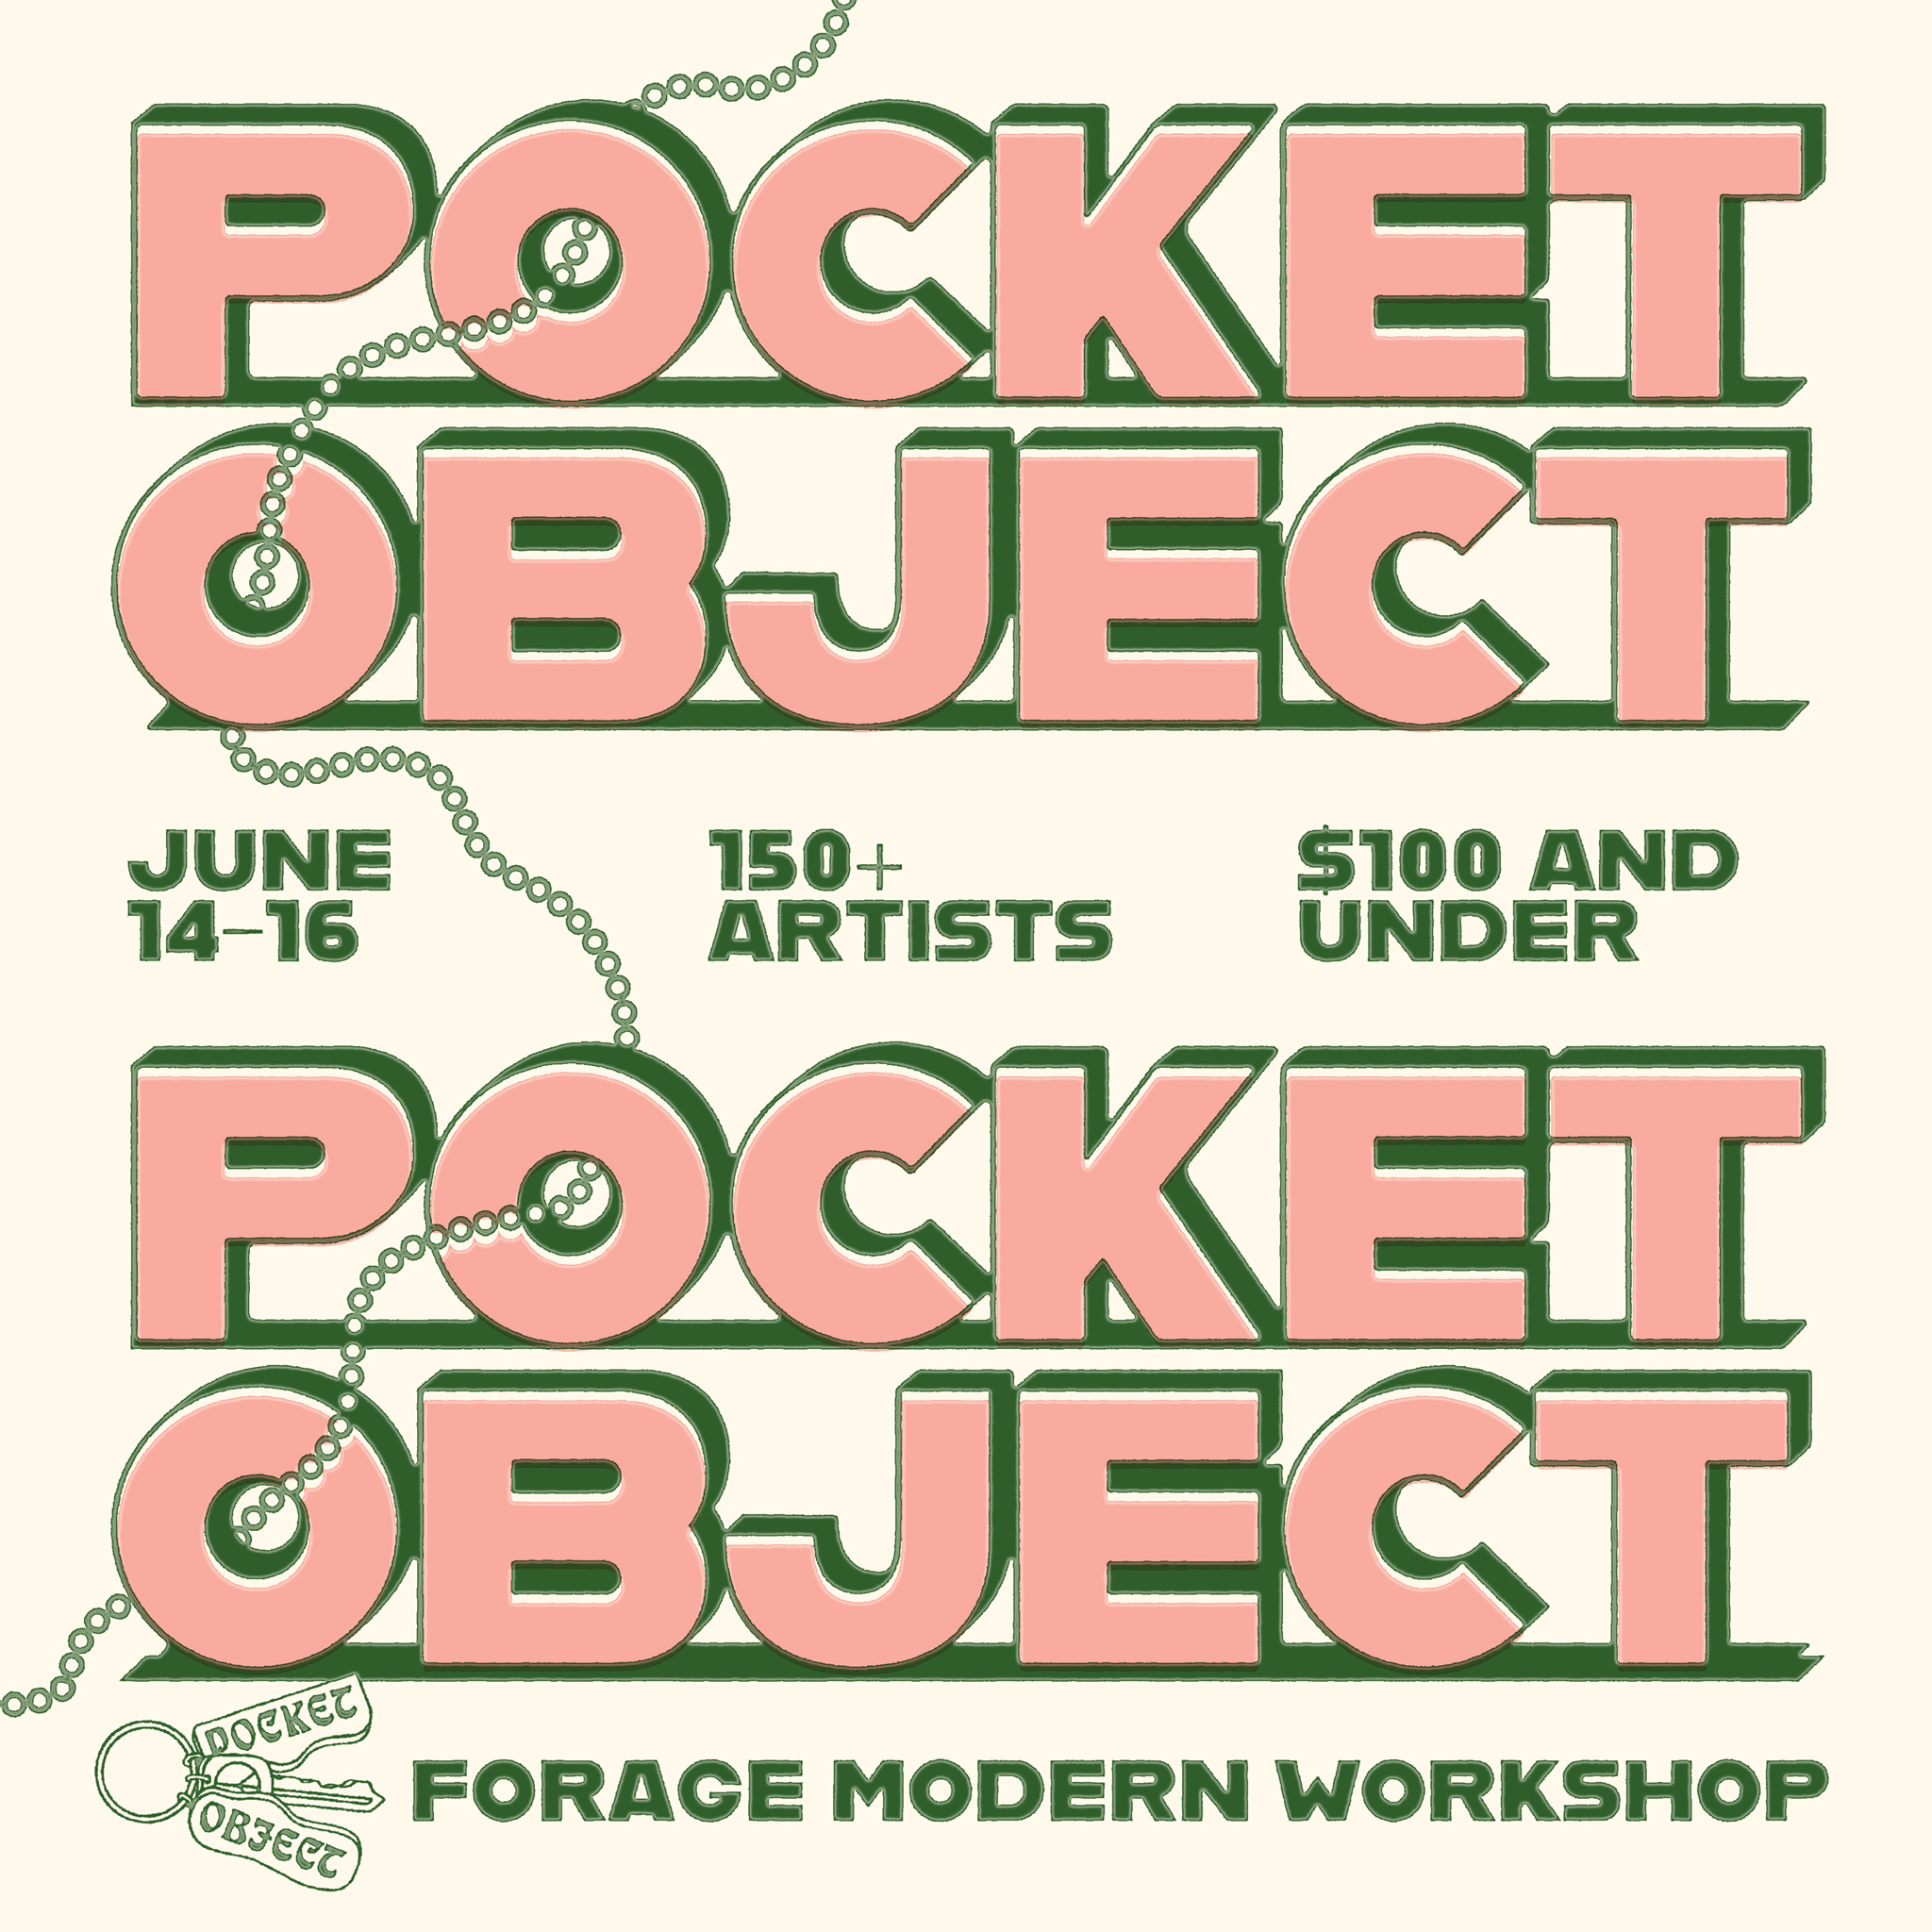 Pocket Object